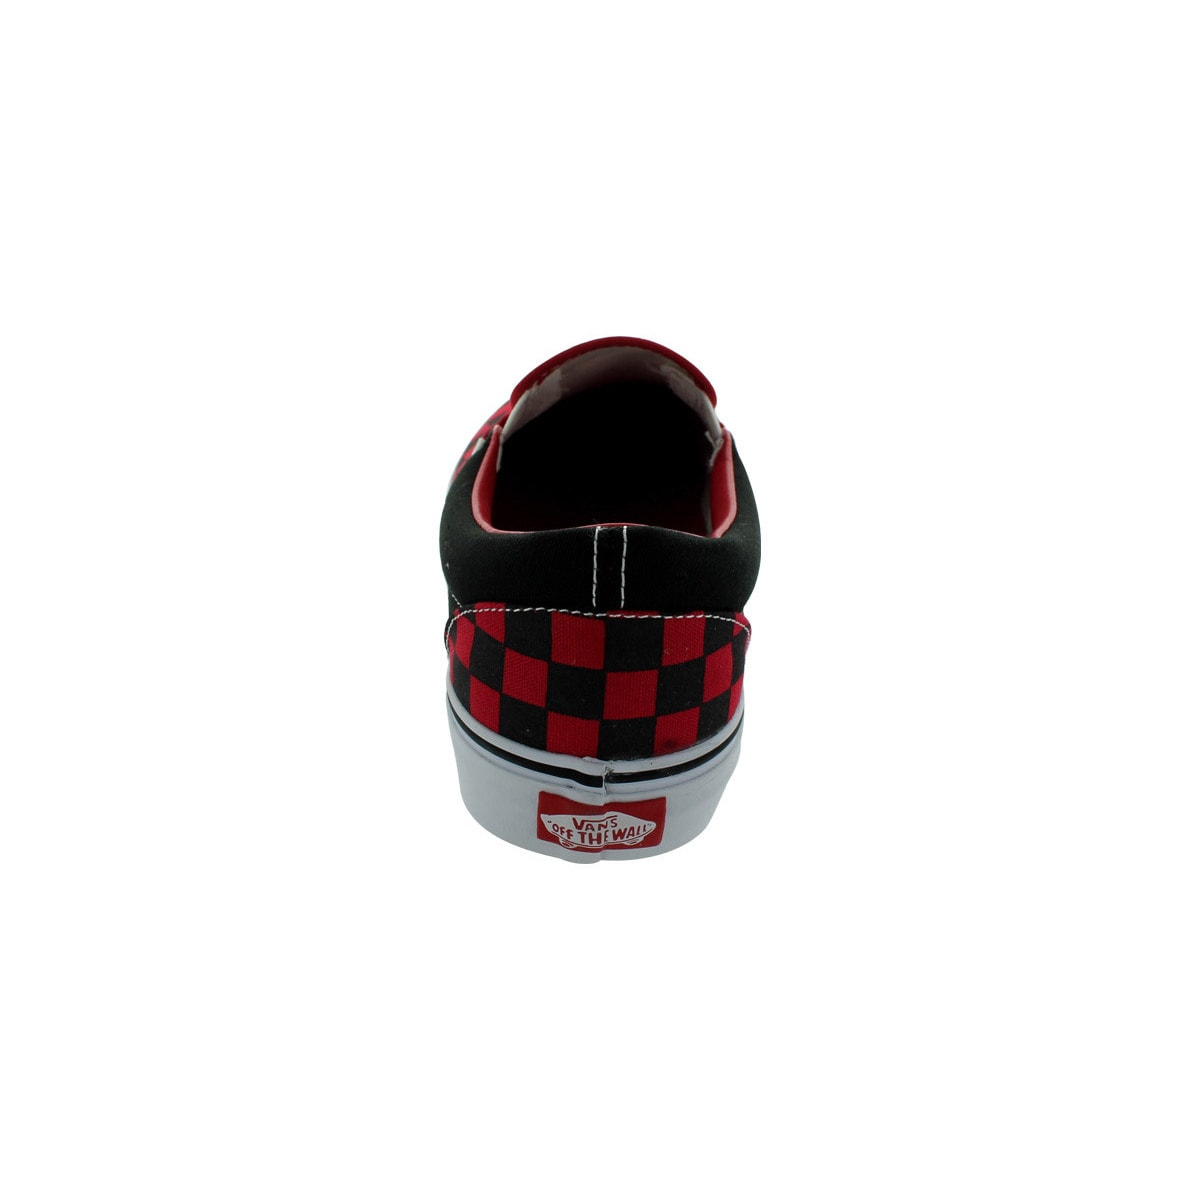 e779e7f2495 Shop Vans Classic Slip-on Formula One Black Checkerboard Skate Shoes - Free  Shipping Today - Overstock - 12115634